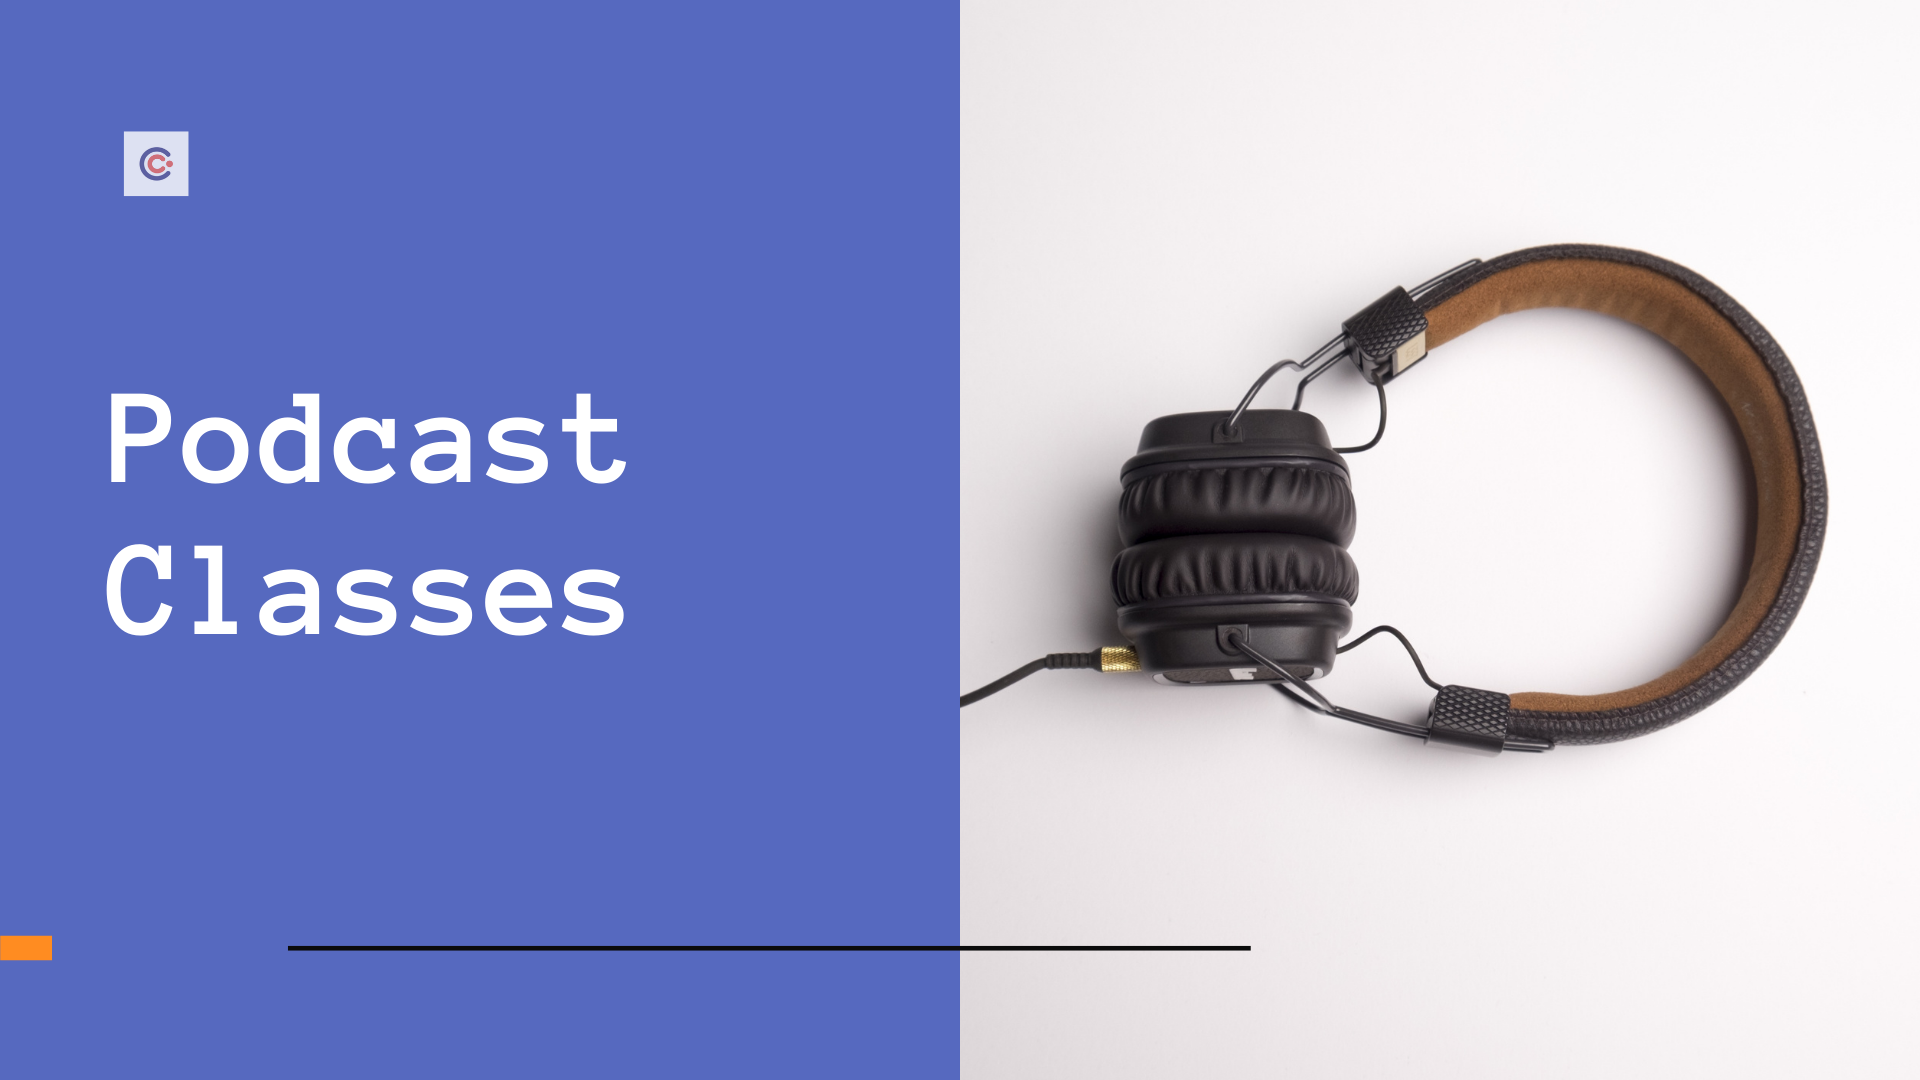 8 Best Podcast Production Classes and Training - Learn Podcasting Online